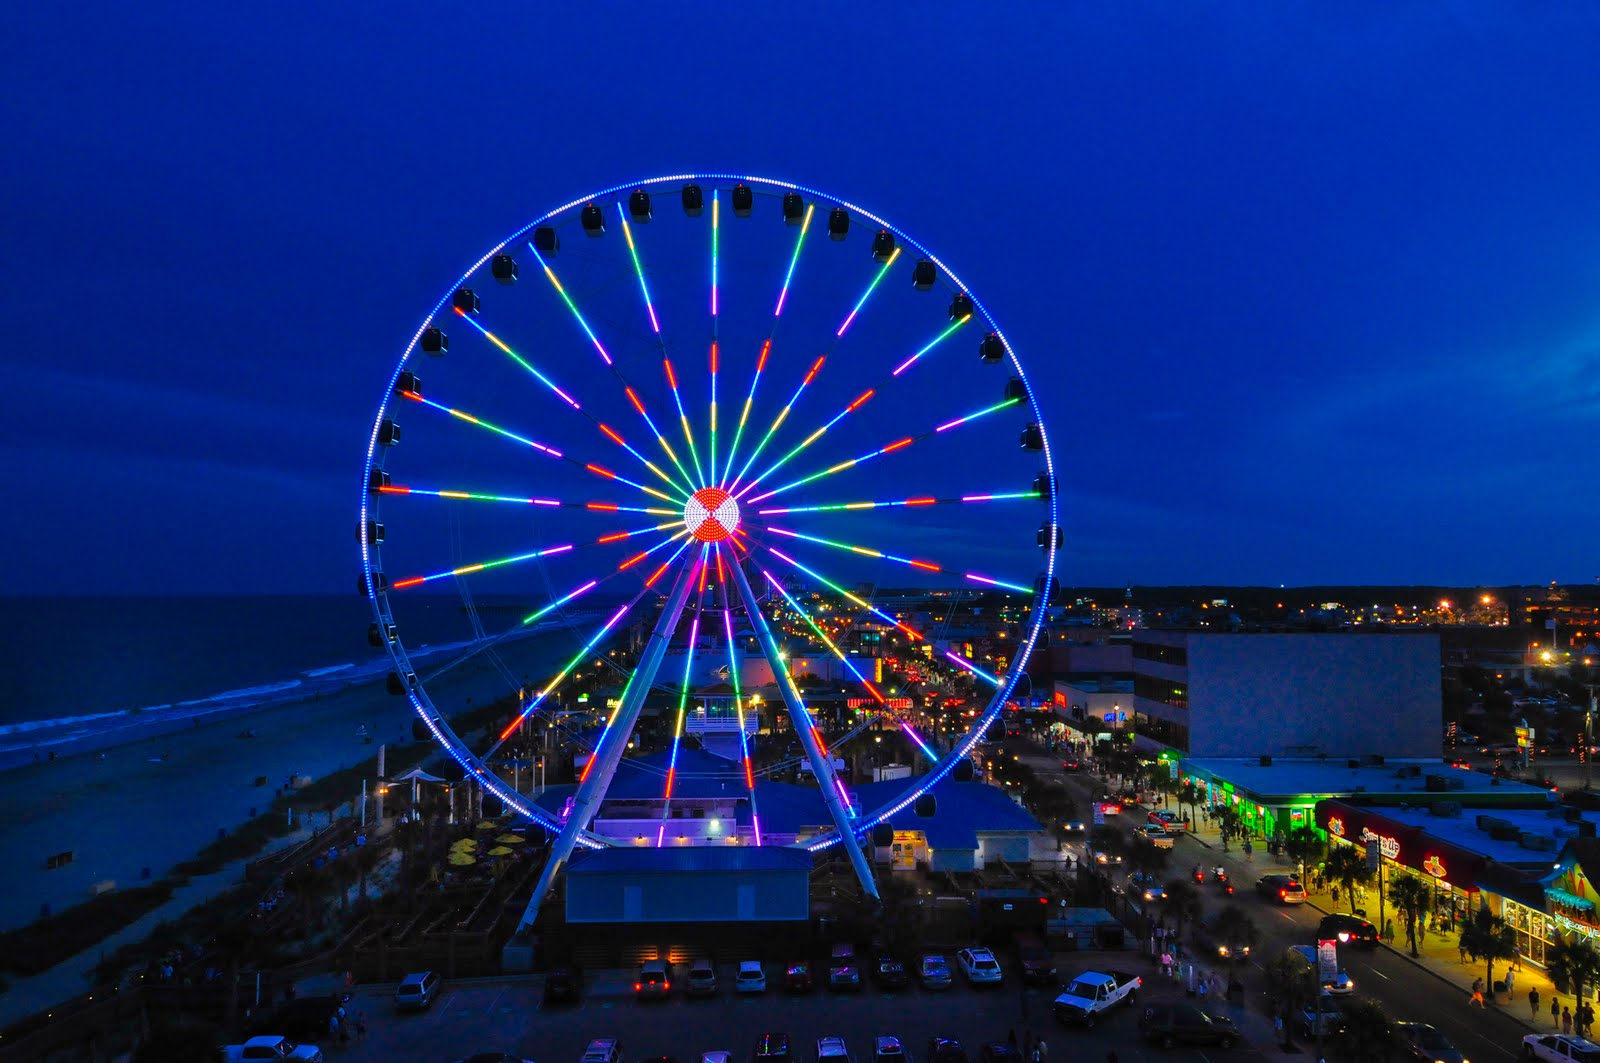 10 Best Things To Do in South Carolina